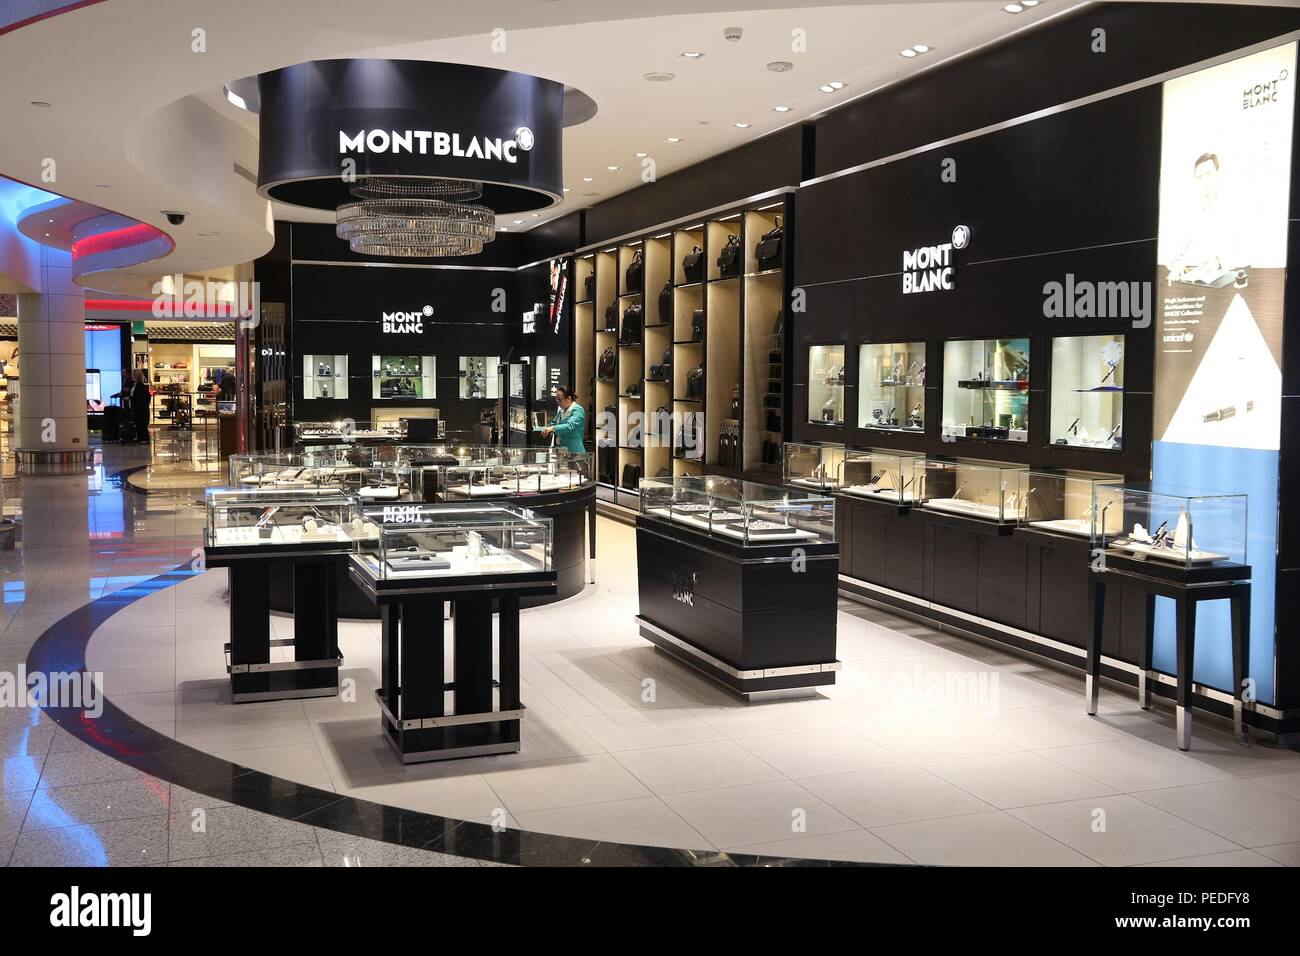 DUBAI, UAE - NOVEMBER 23, 2017: People shop at Montblanc store at Dubai International Airport, United Arab Emirates. The German brand Montblanc is fam Stock Photo